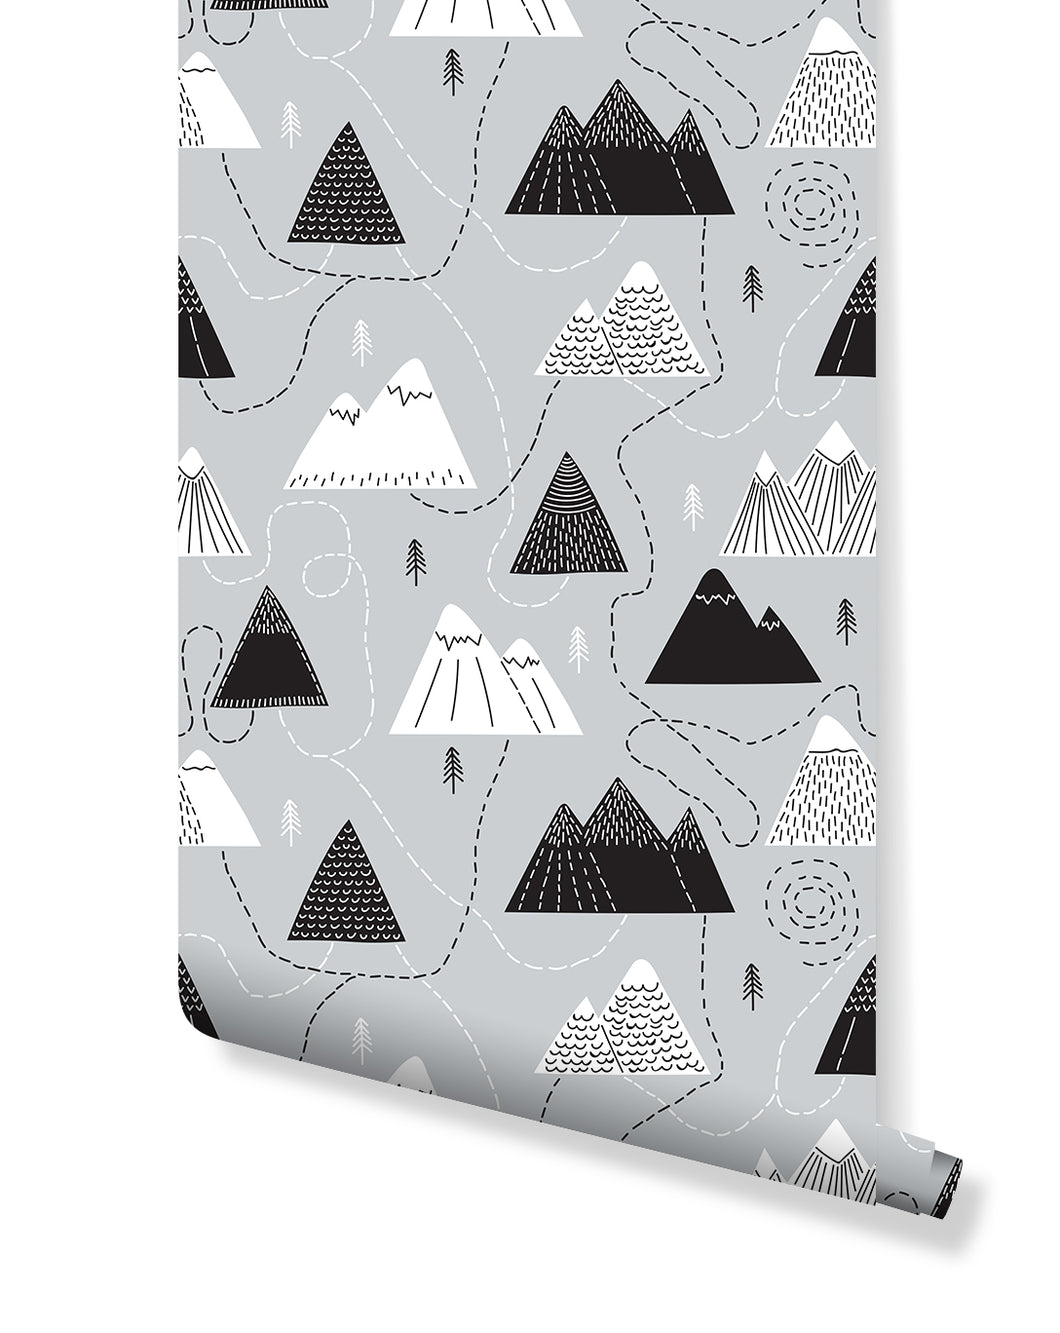 Scandinavian Style Self Adhesive Removable Wallpaper with Hand drawn Mountains and Routs, Temporary Black White and Gray Wall Decor CC172